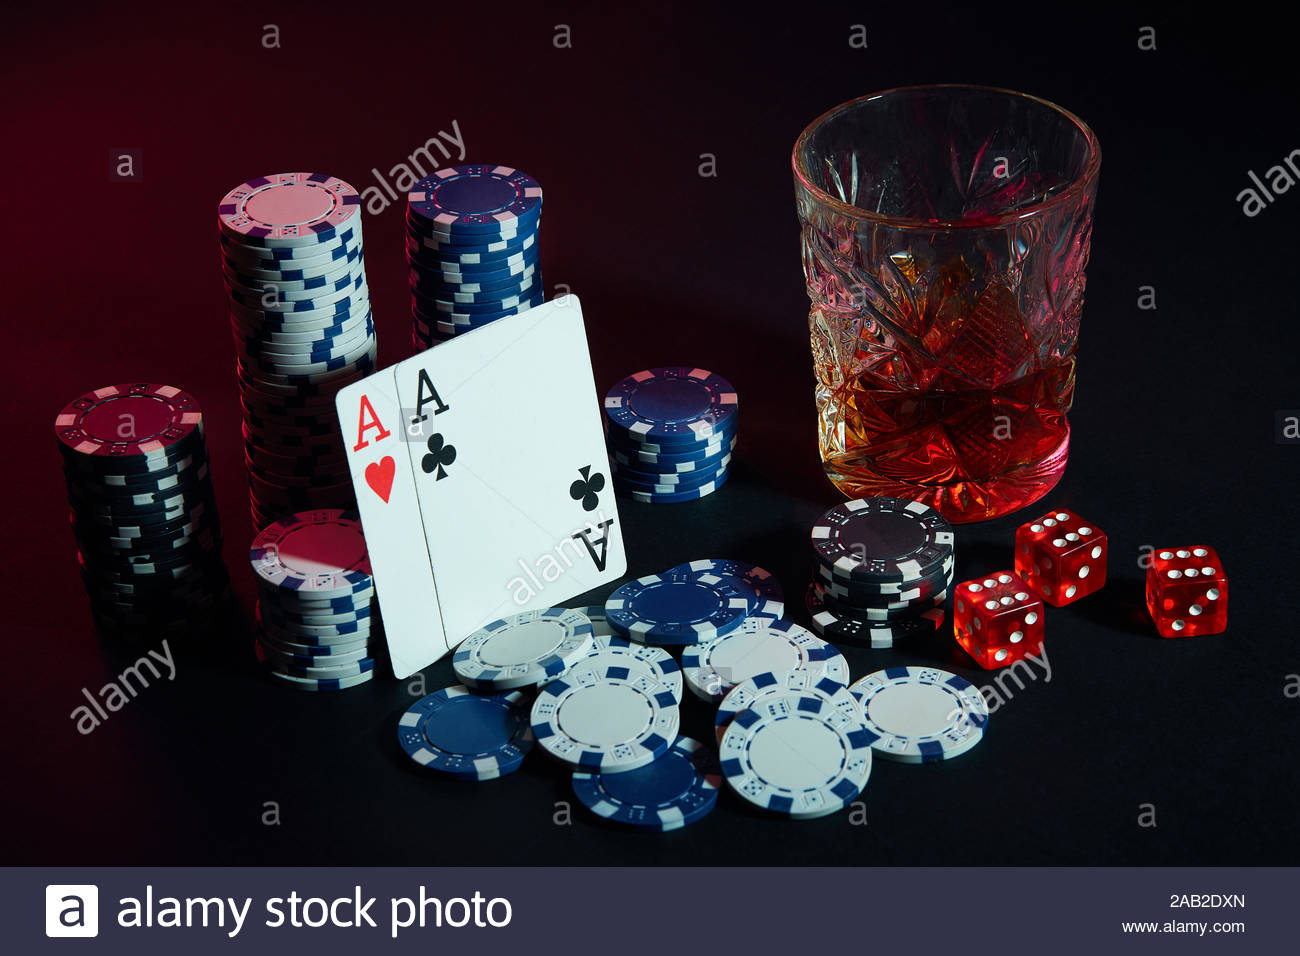 Easy Steps To A 10 Minute Online Gambling